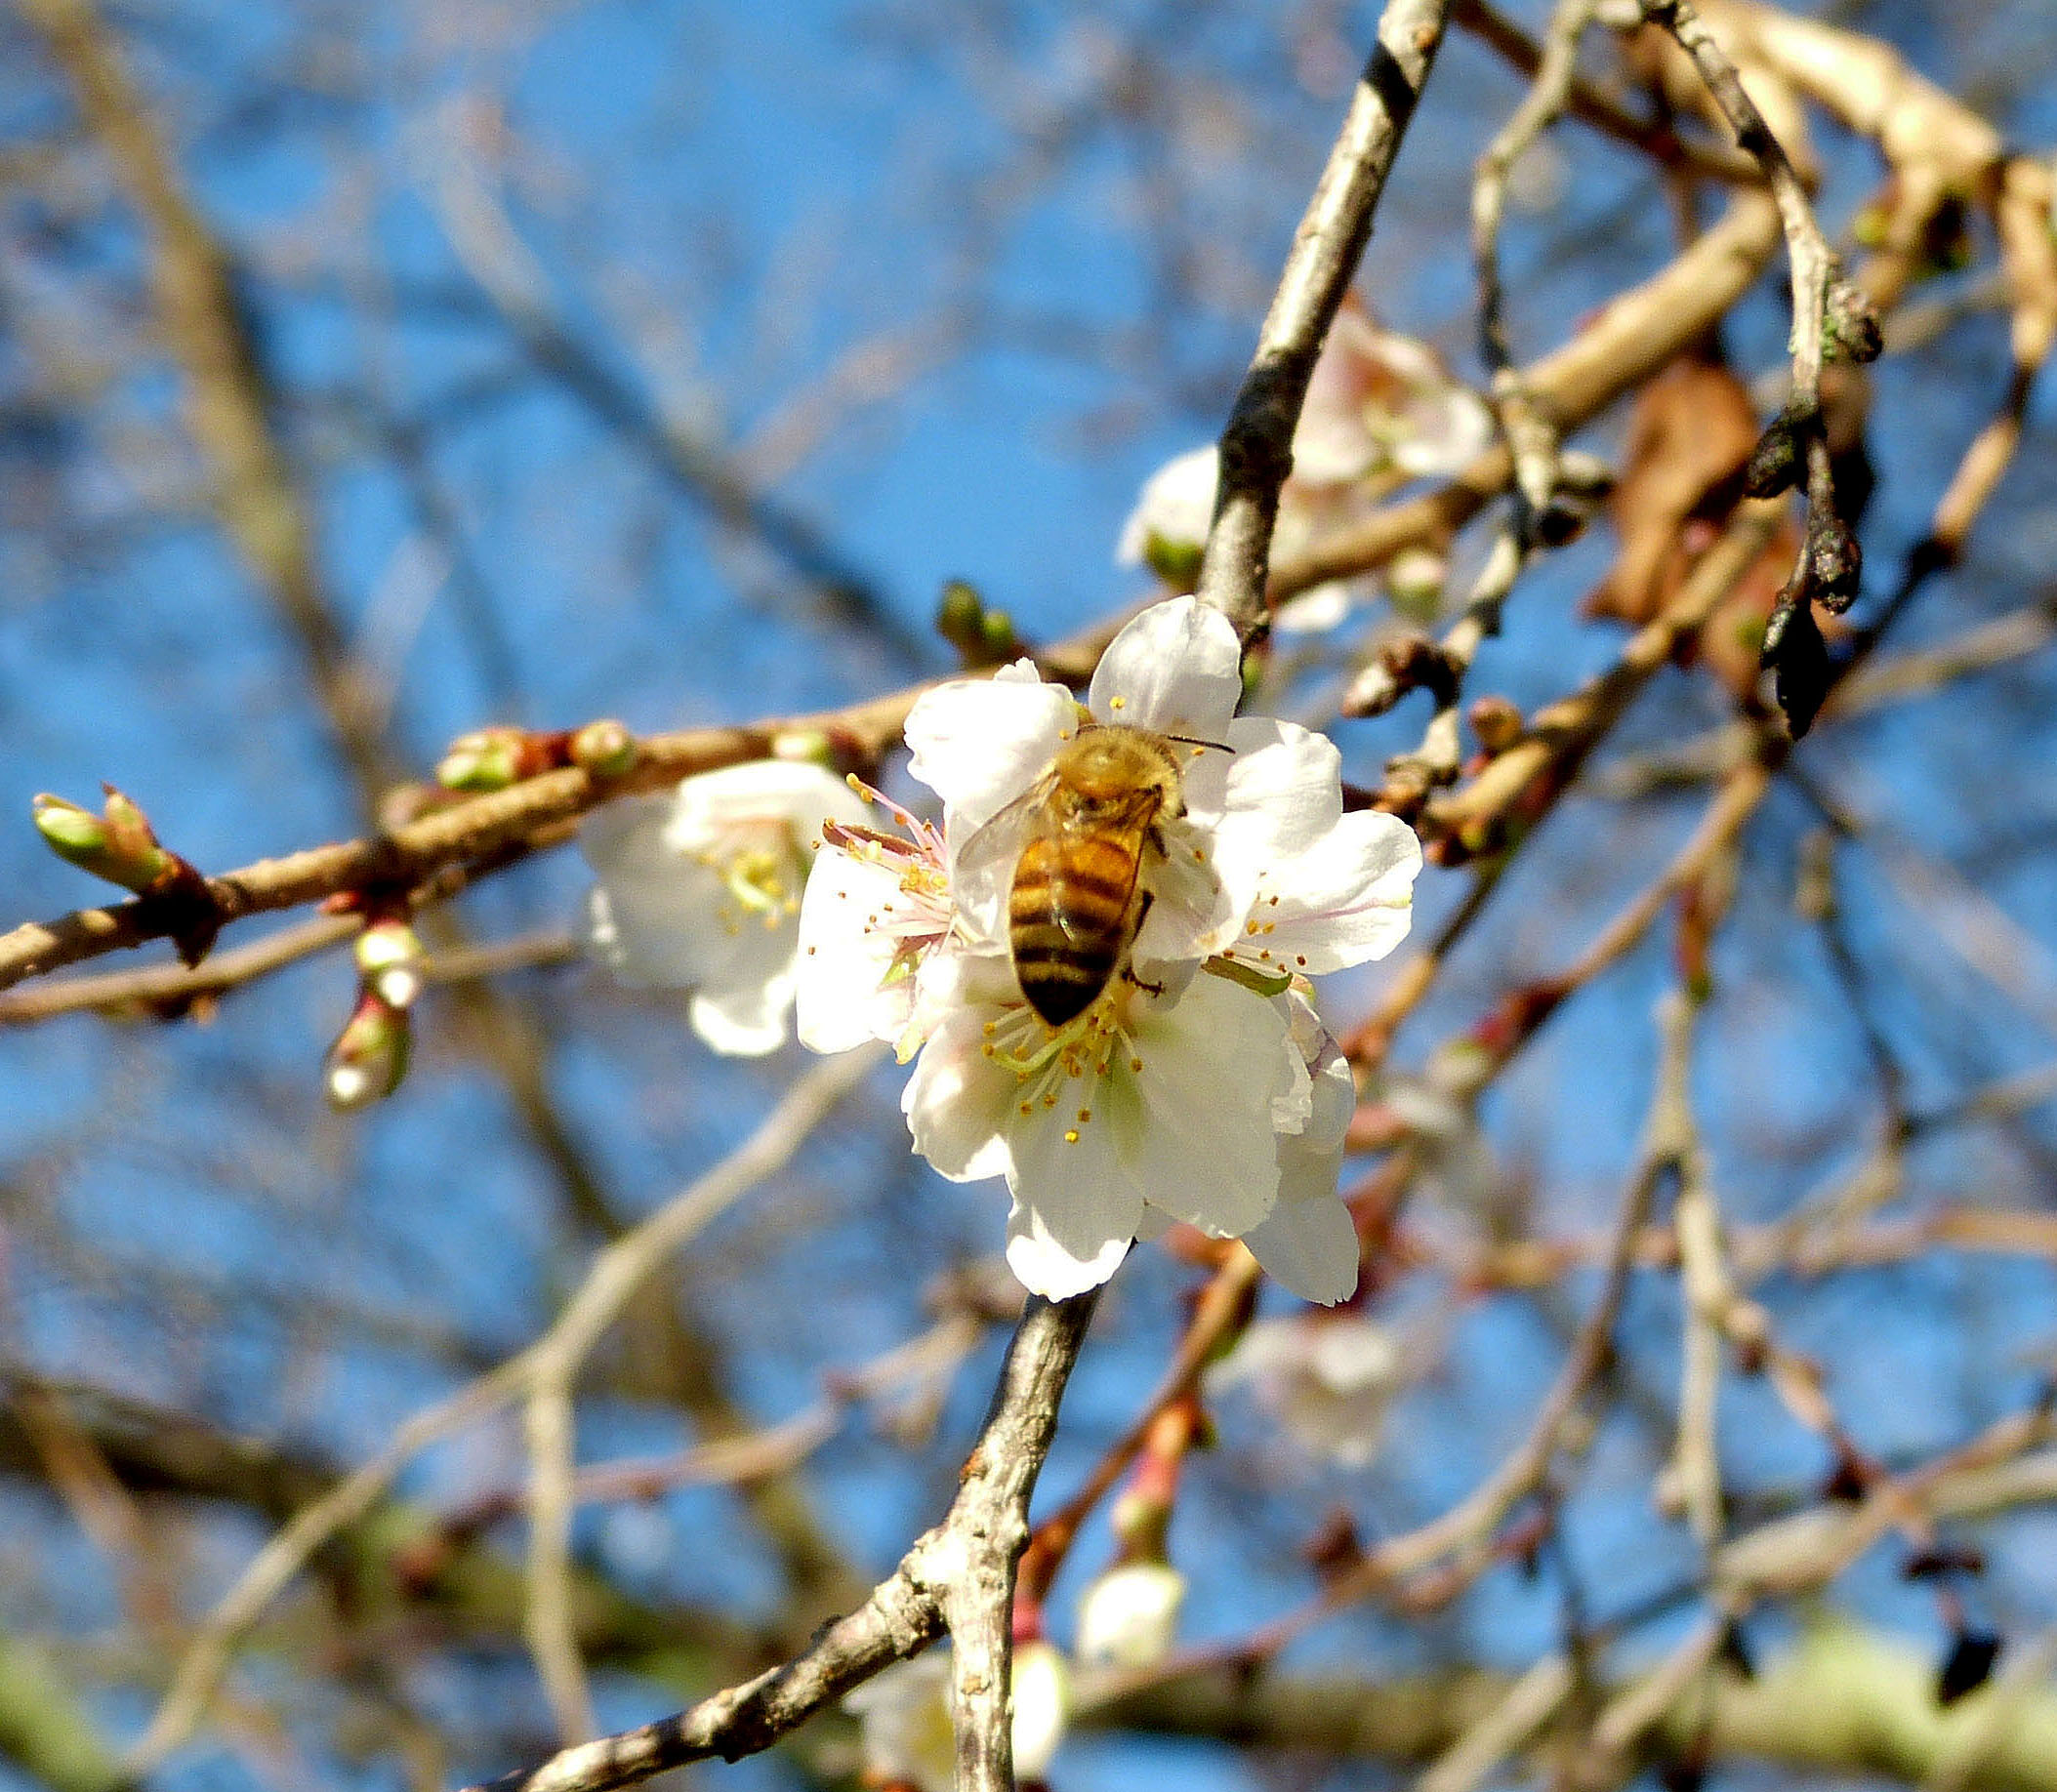 Out of season bloom on a Fugi Cherry in the Rose Garden attracted a hardy honey bee